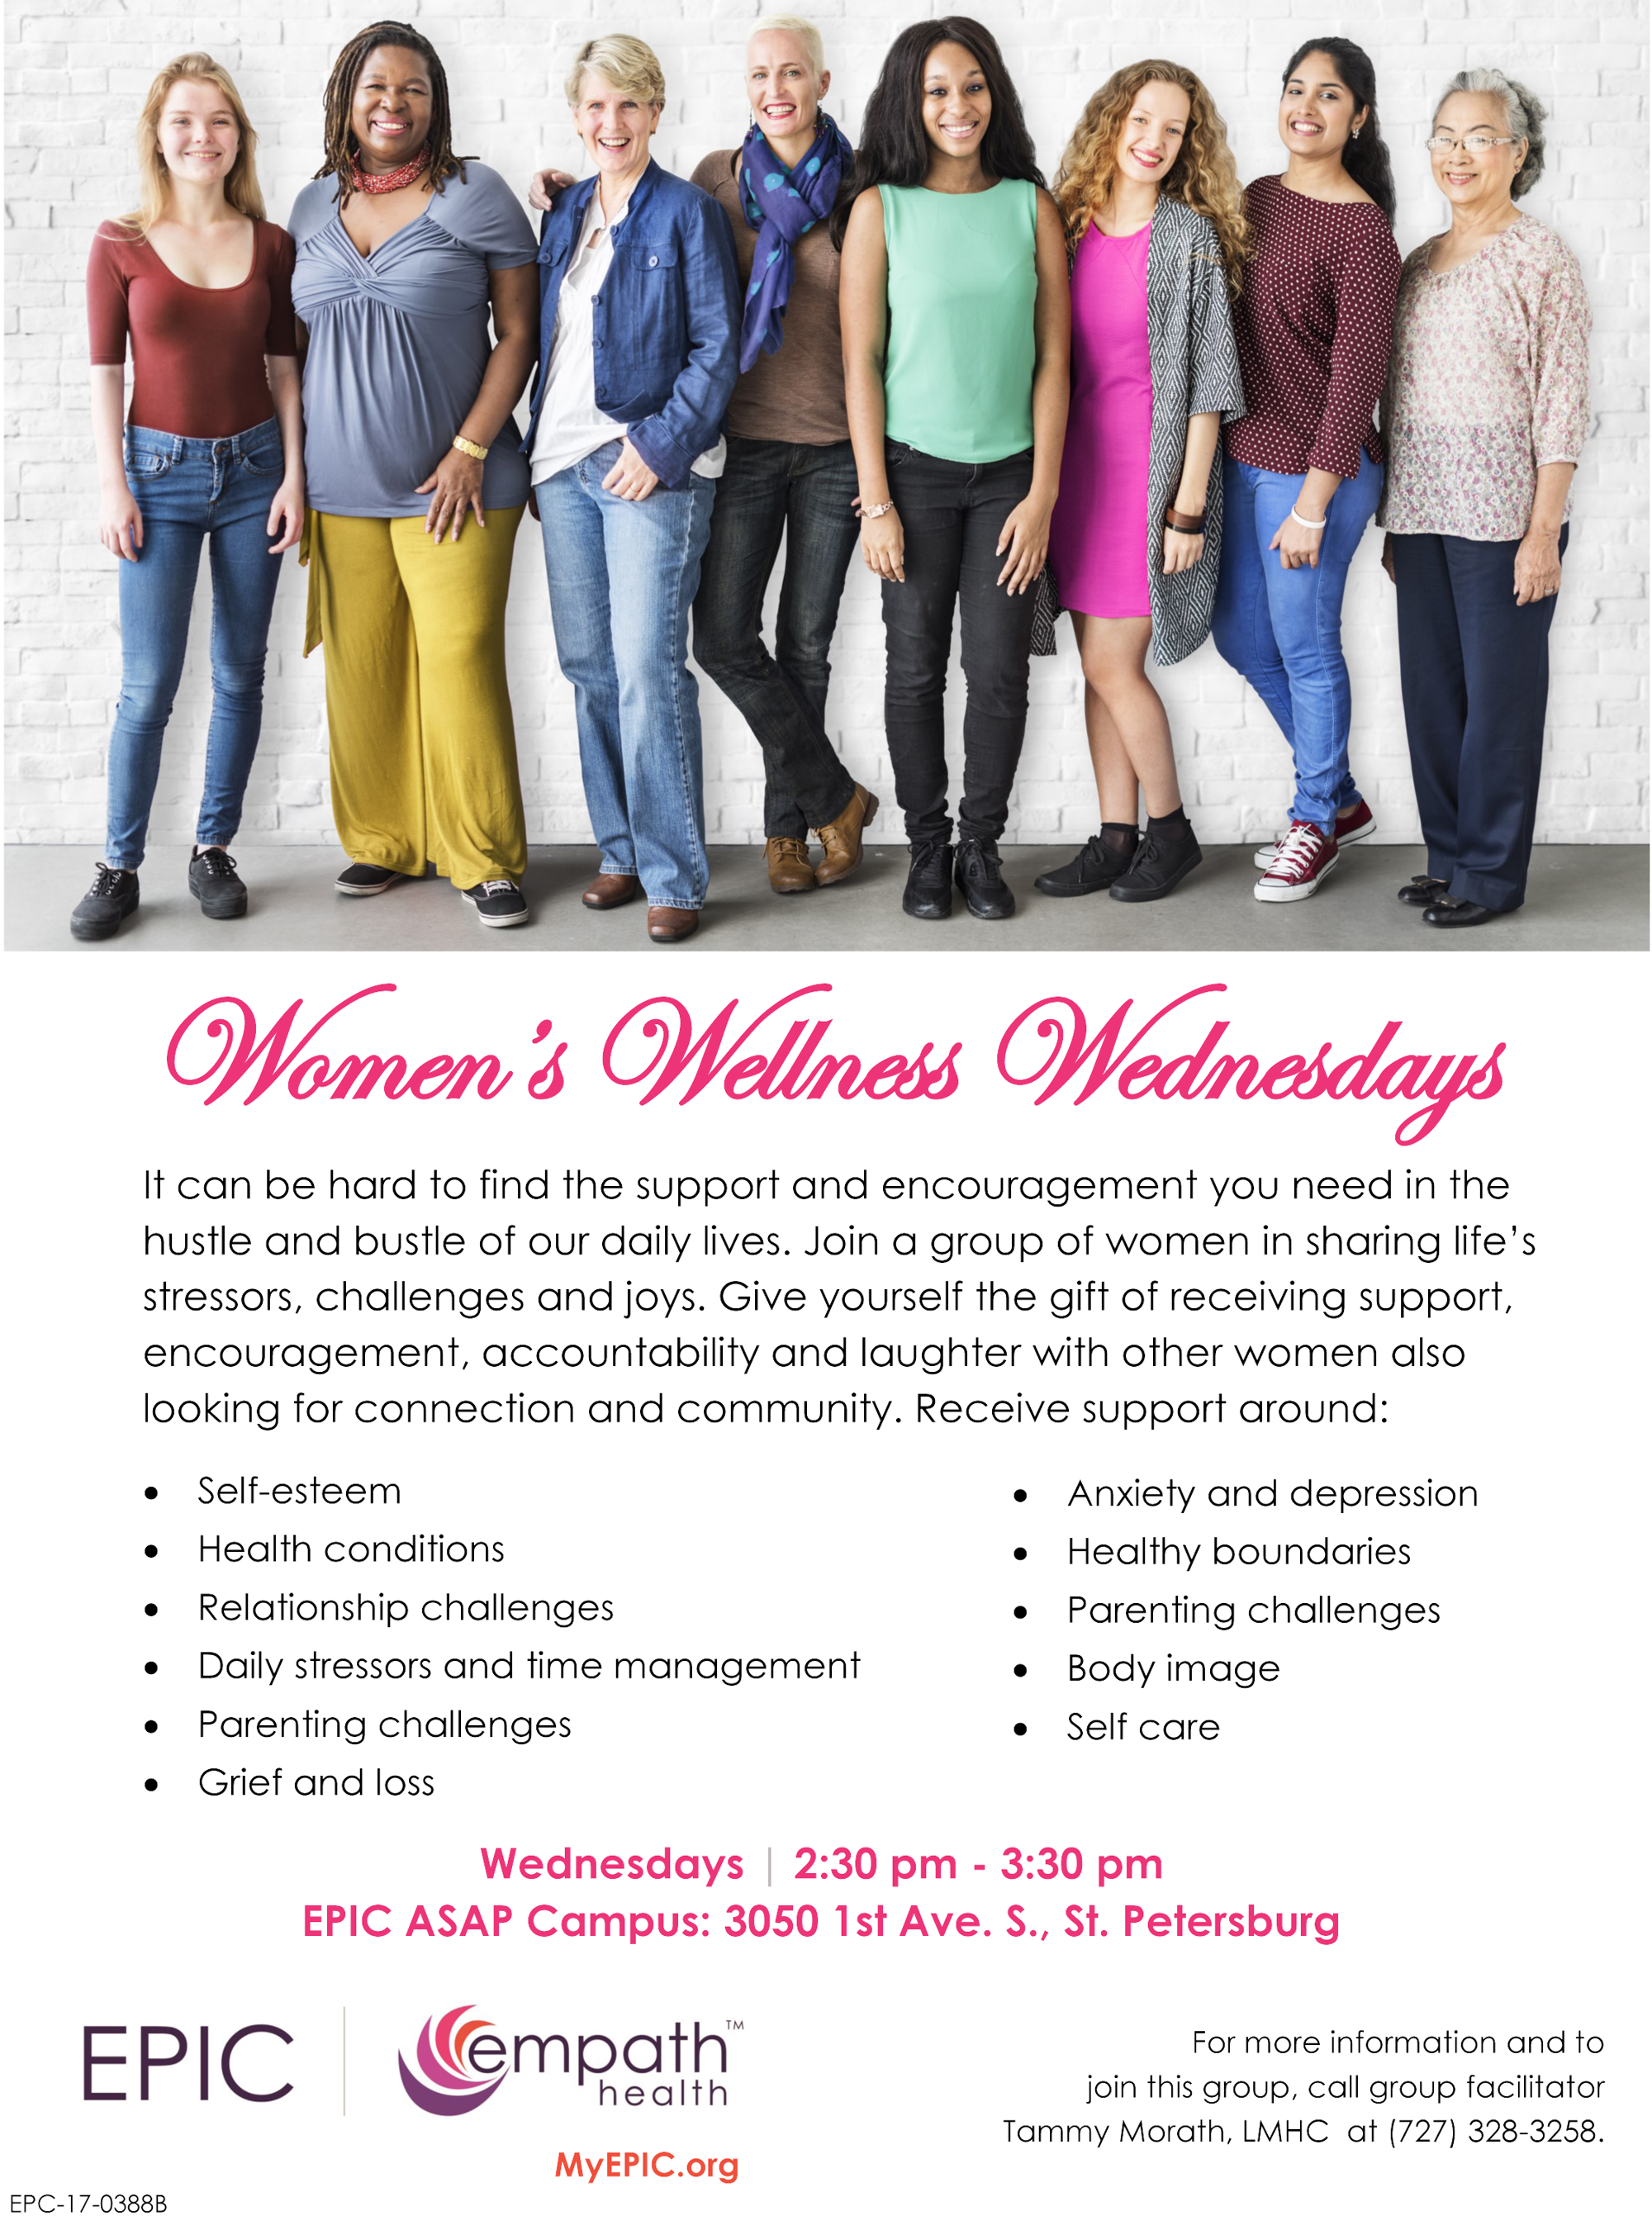 Women's Wellness Wednesdays @ EPIC ASAP Campus